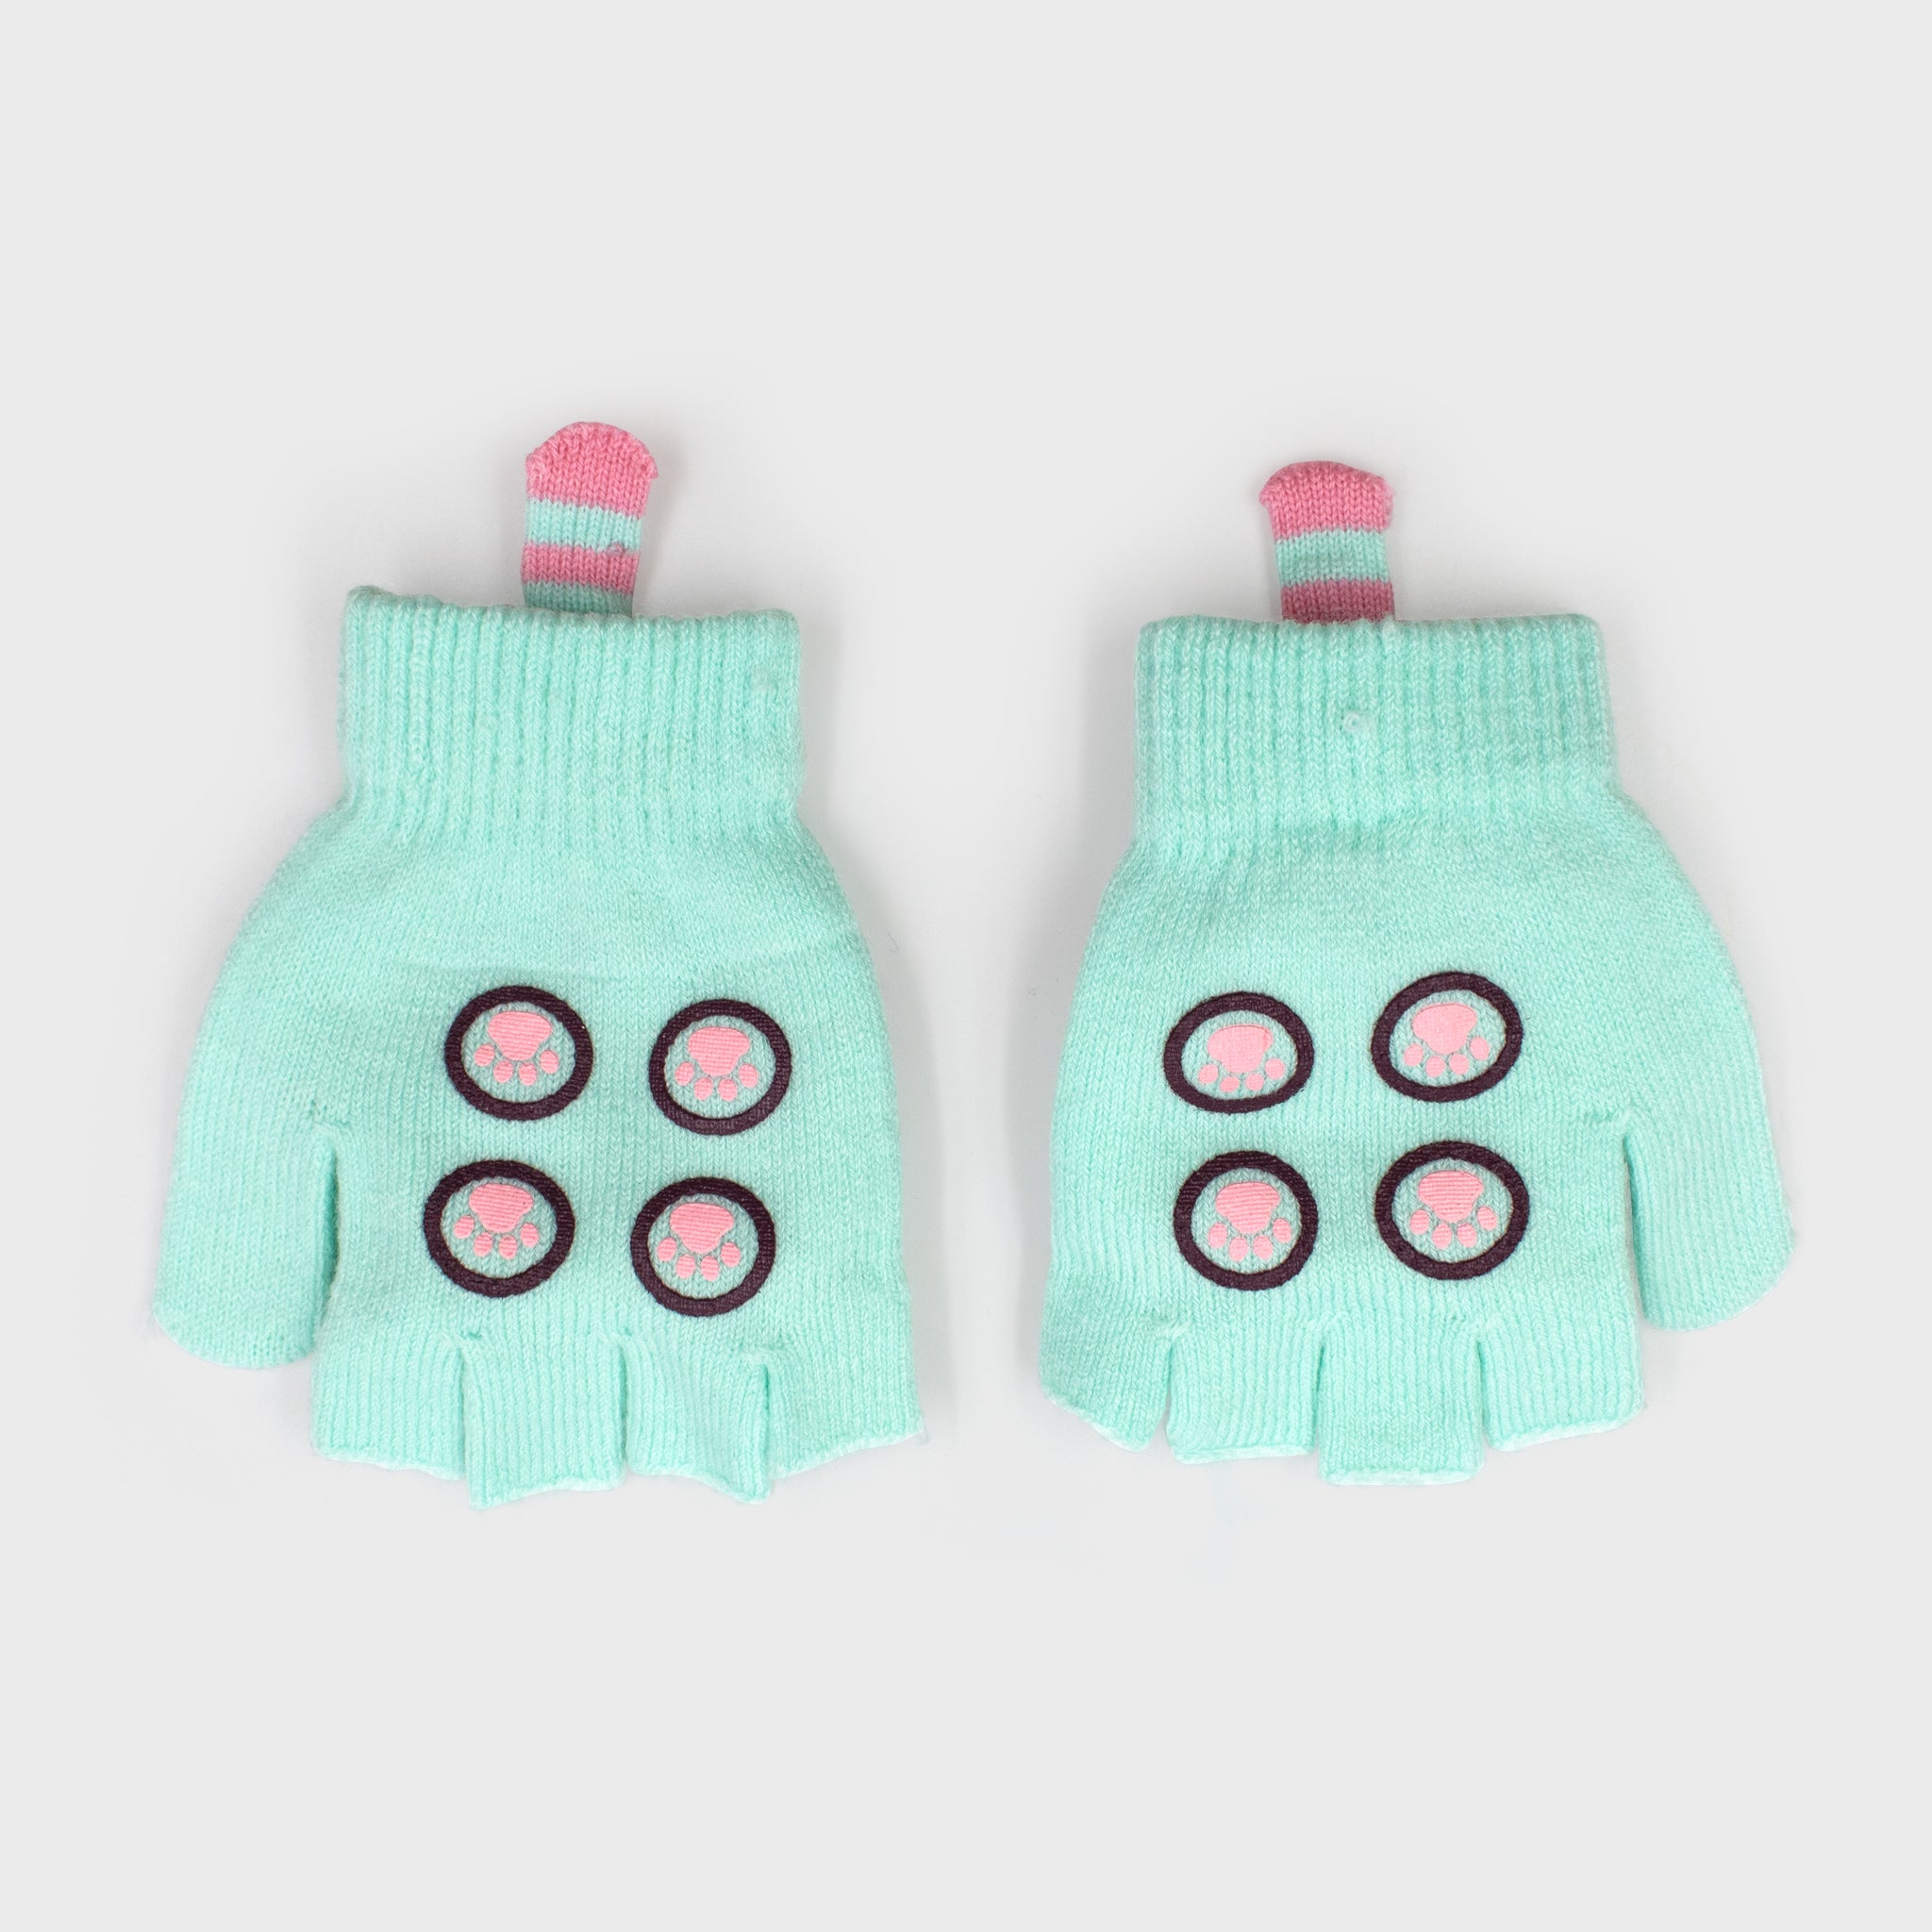 pusheen gloves mittens character green mint cute adorable winter fall cold accessory culturefly